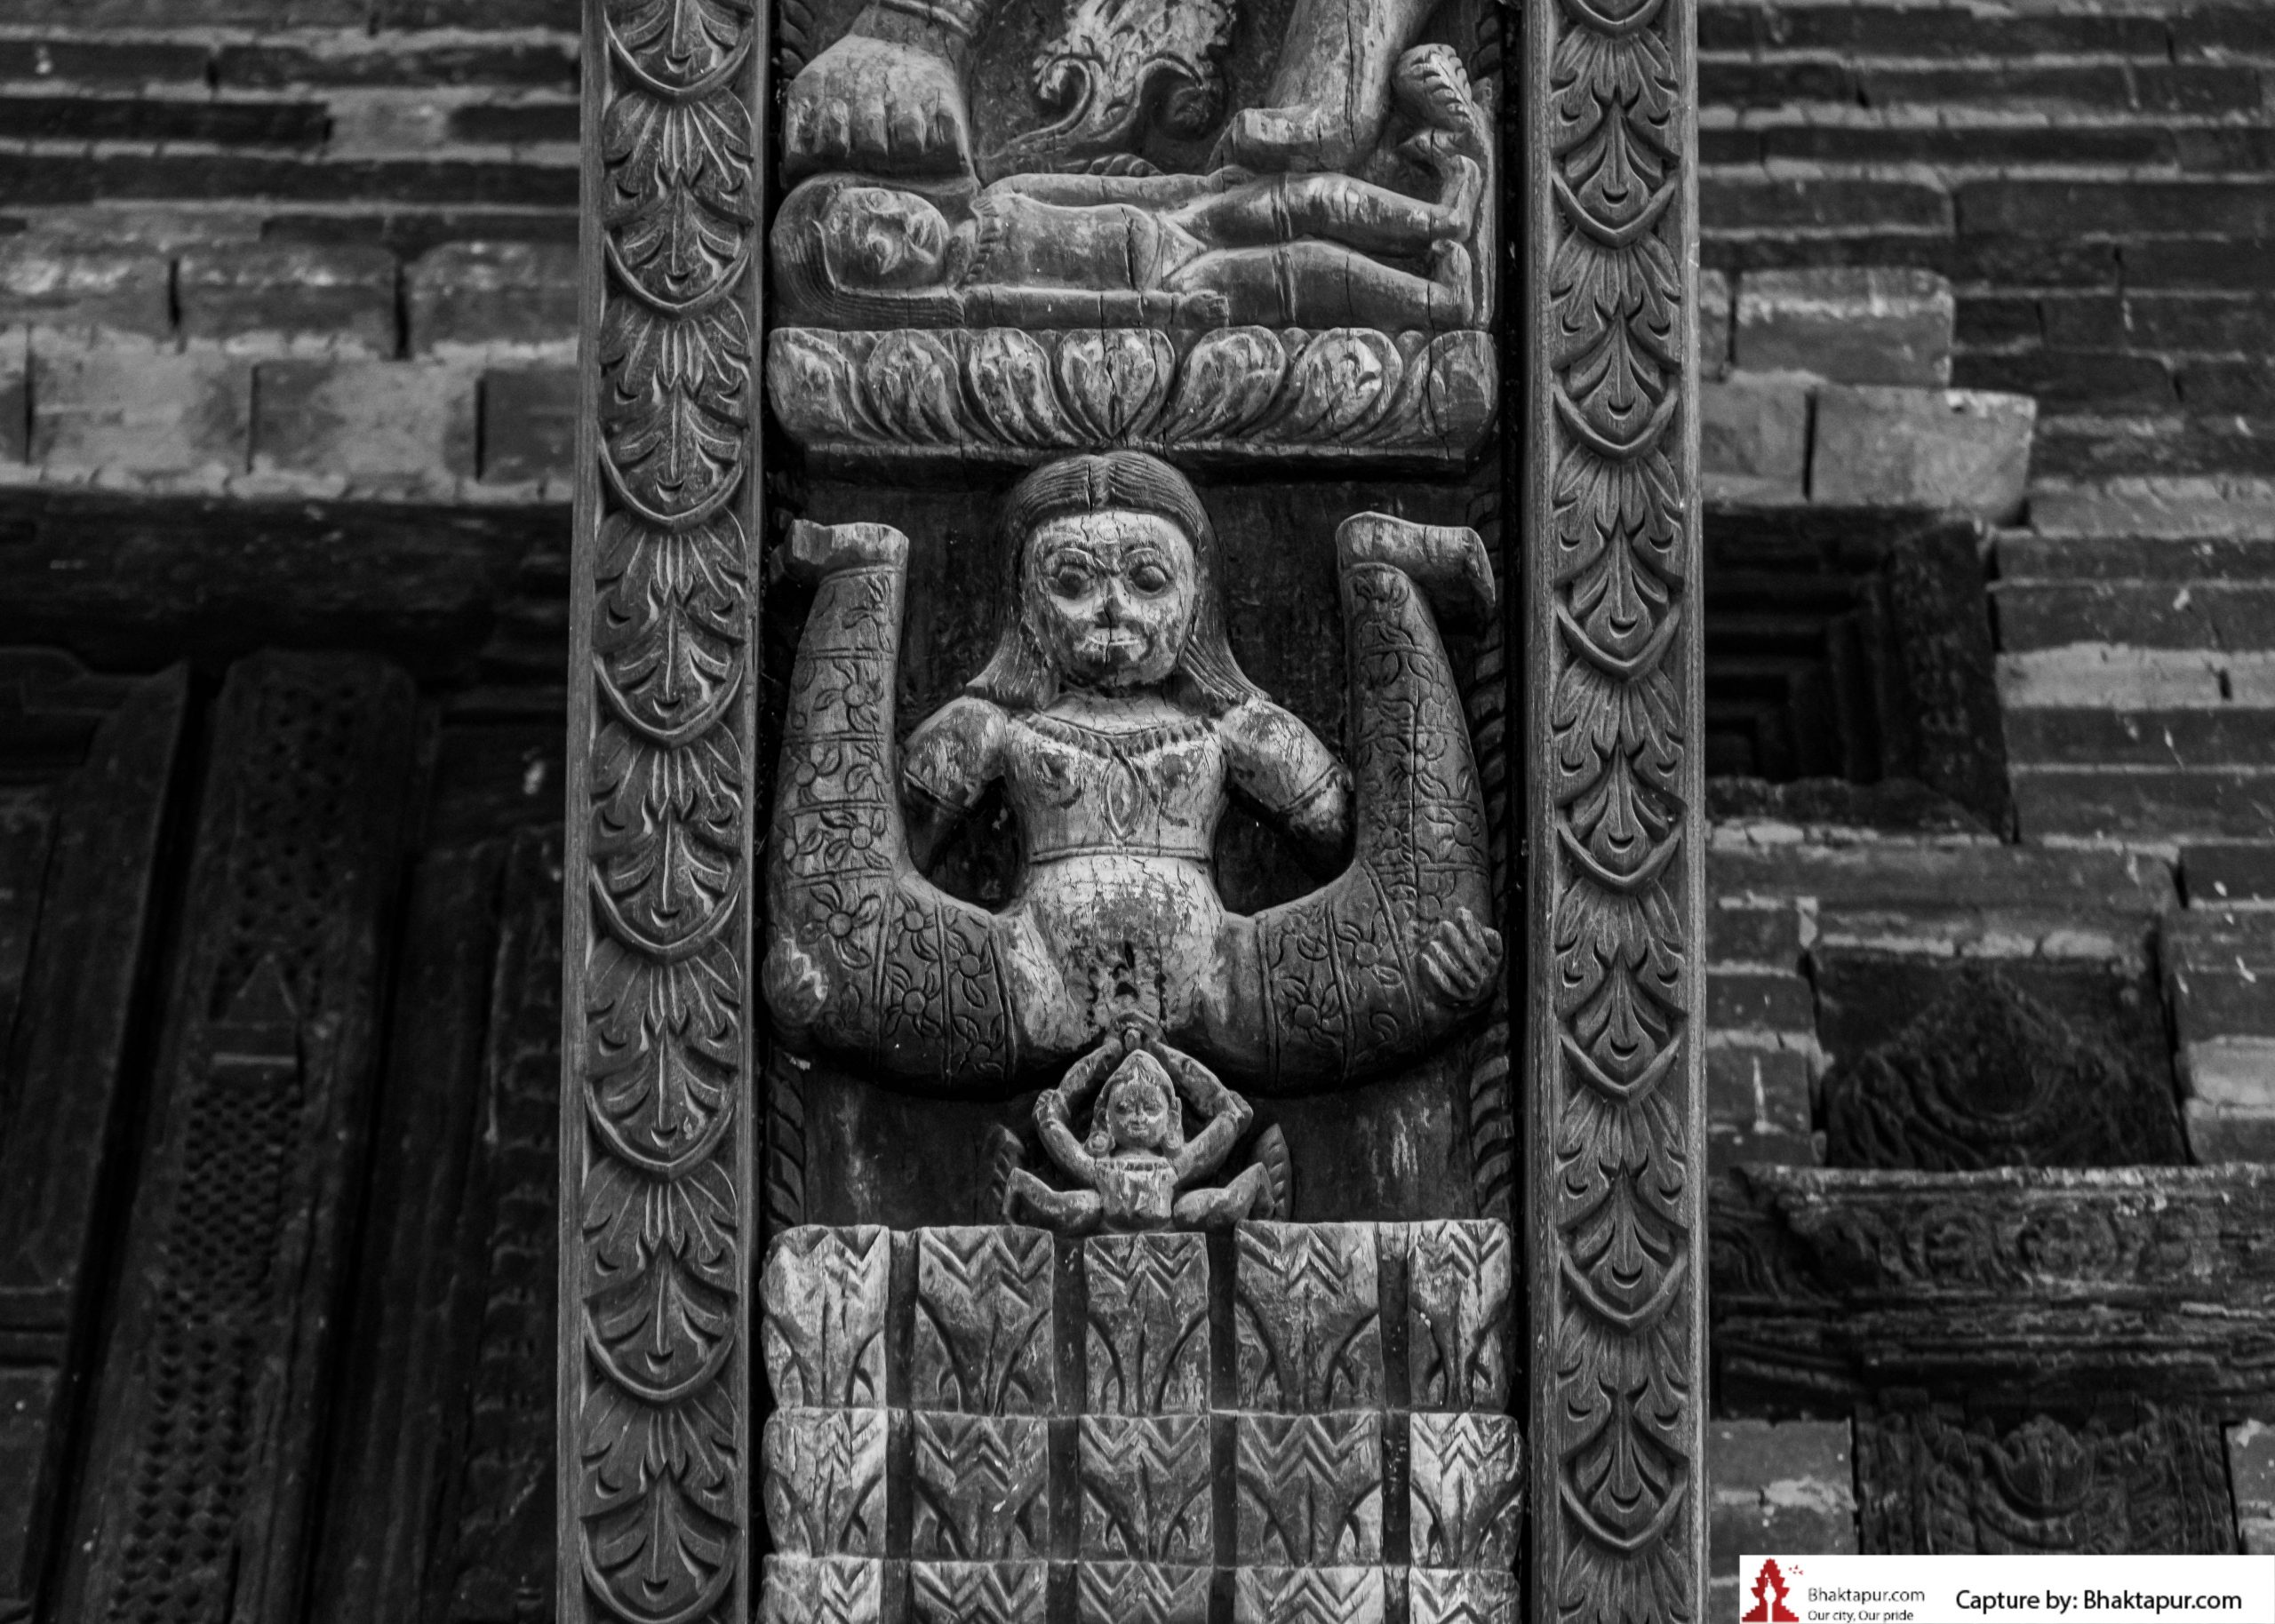 https://www.bhaktapur.com/wp-content/uploads/2021/08/erotic-carving-102-of-137-scaled.jpg